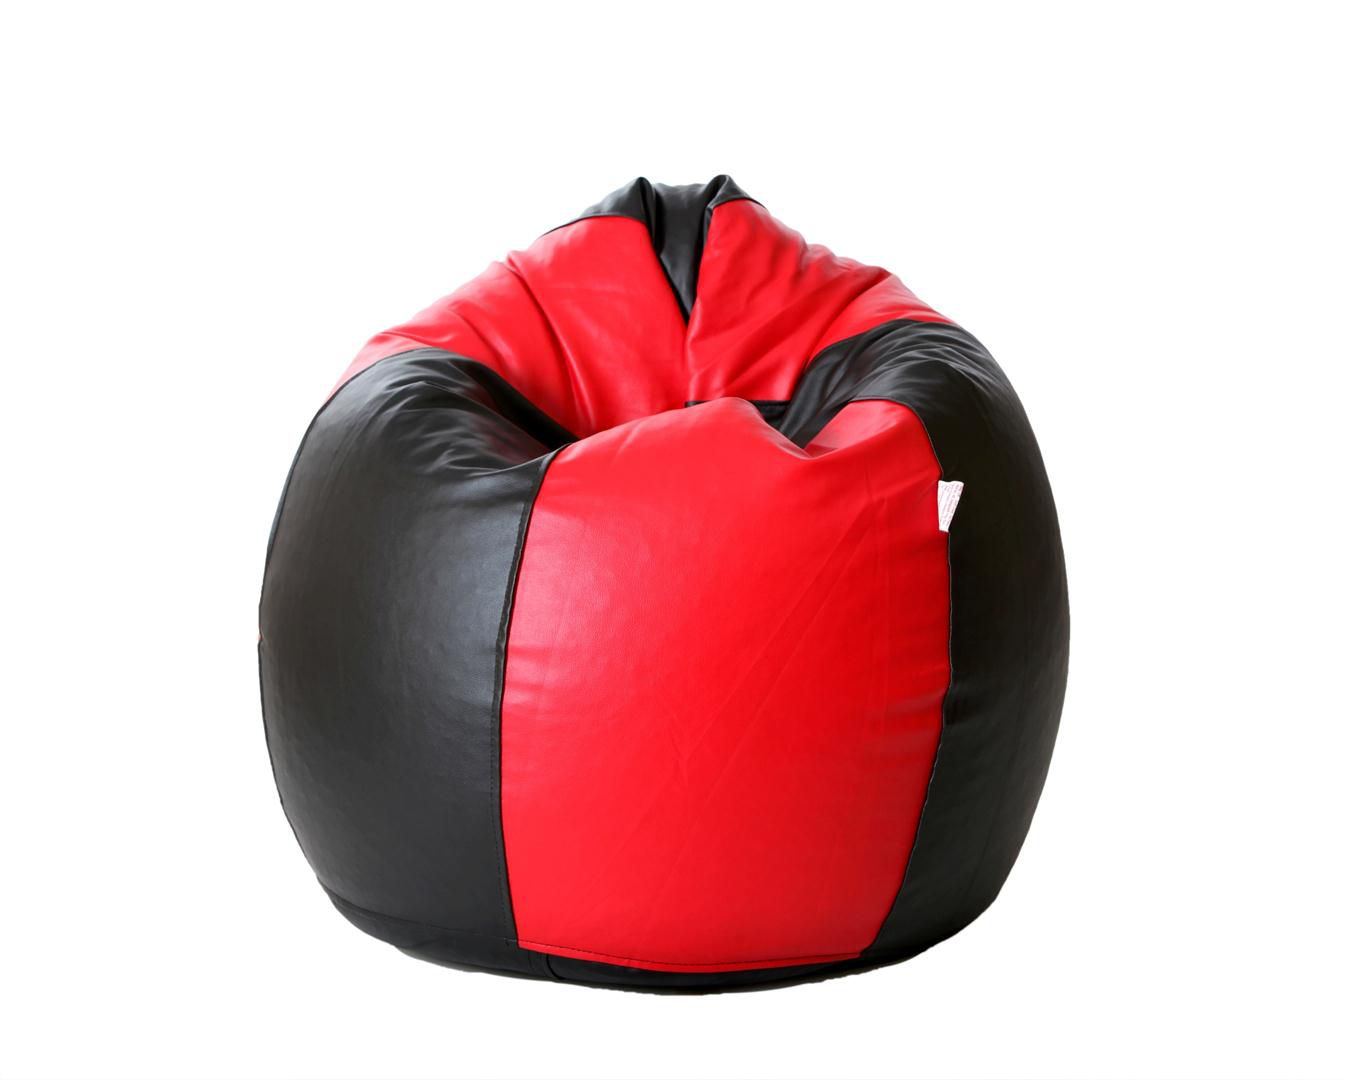 Comfy Xxl Bean Bag Filled With Beans In Red And Black